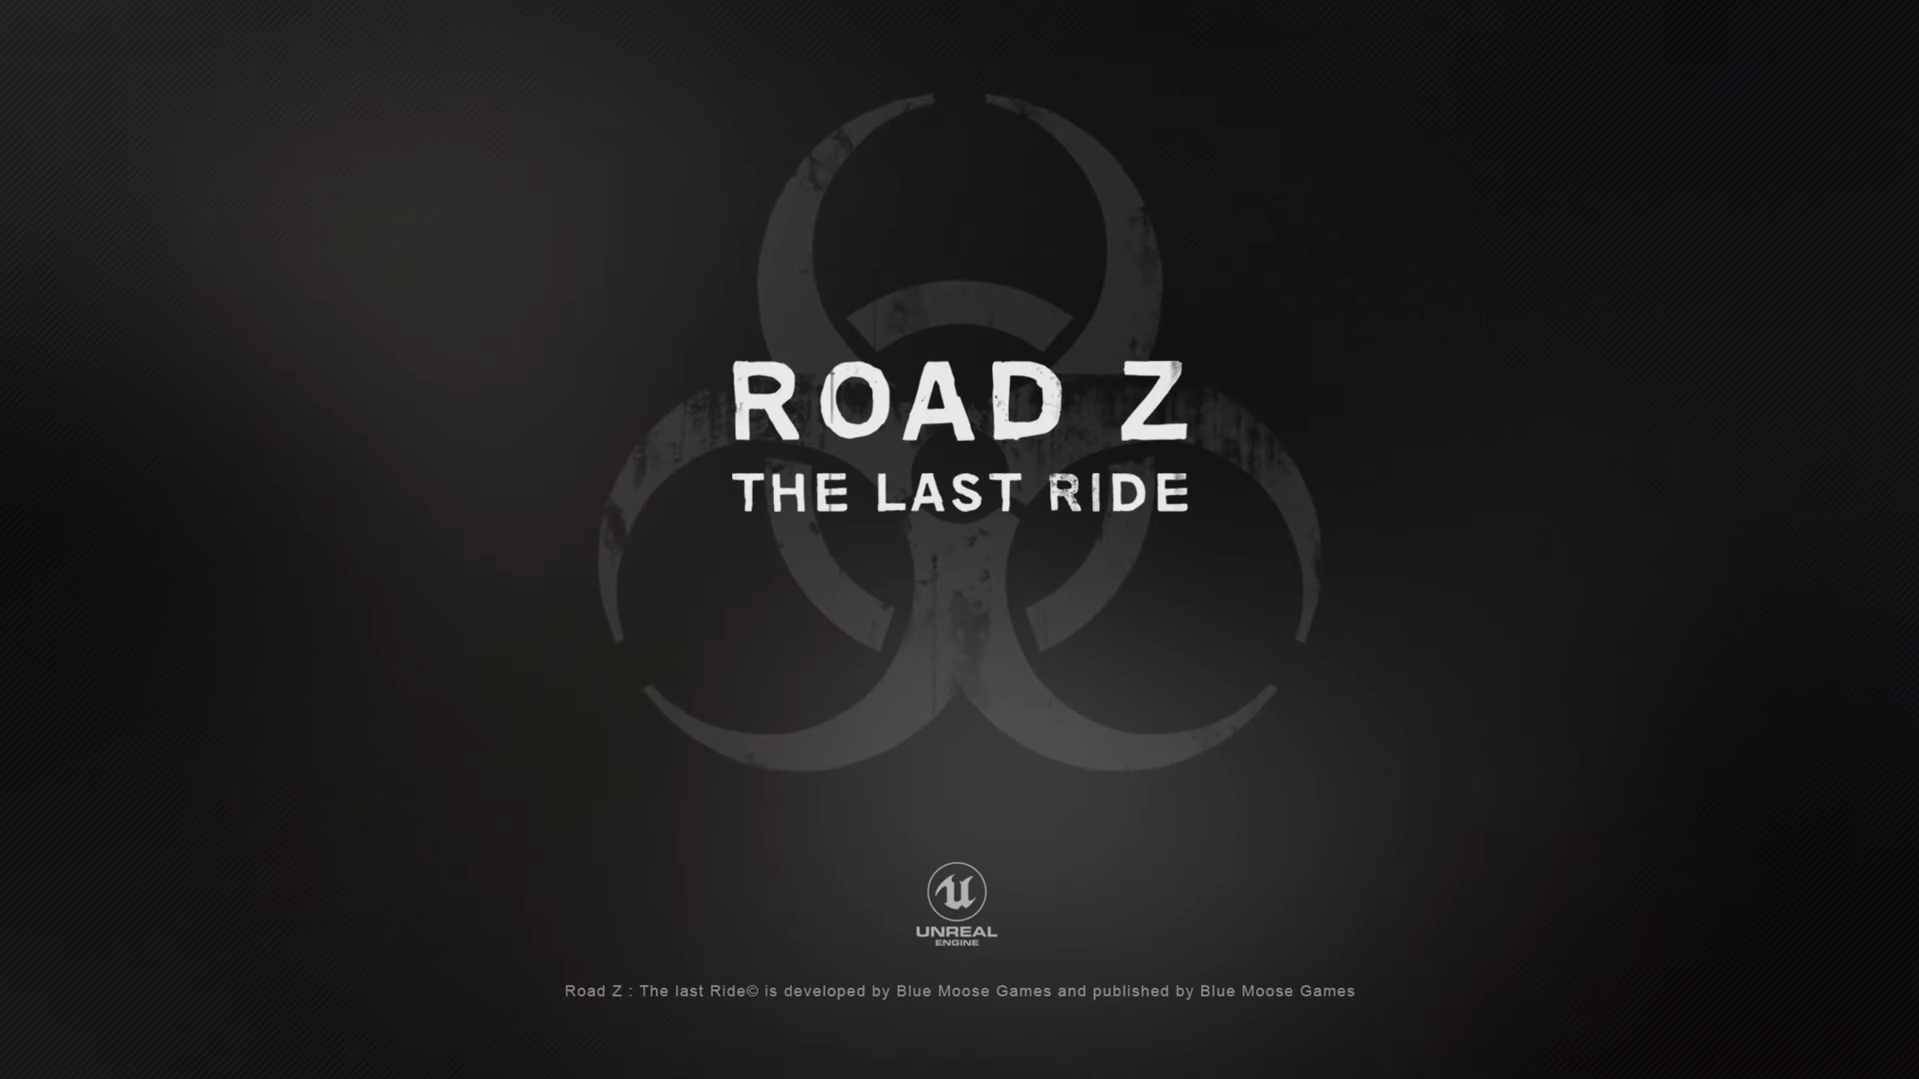 """Road Z : The Last Drive"" für den 21. August angekündigt"